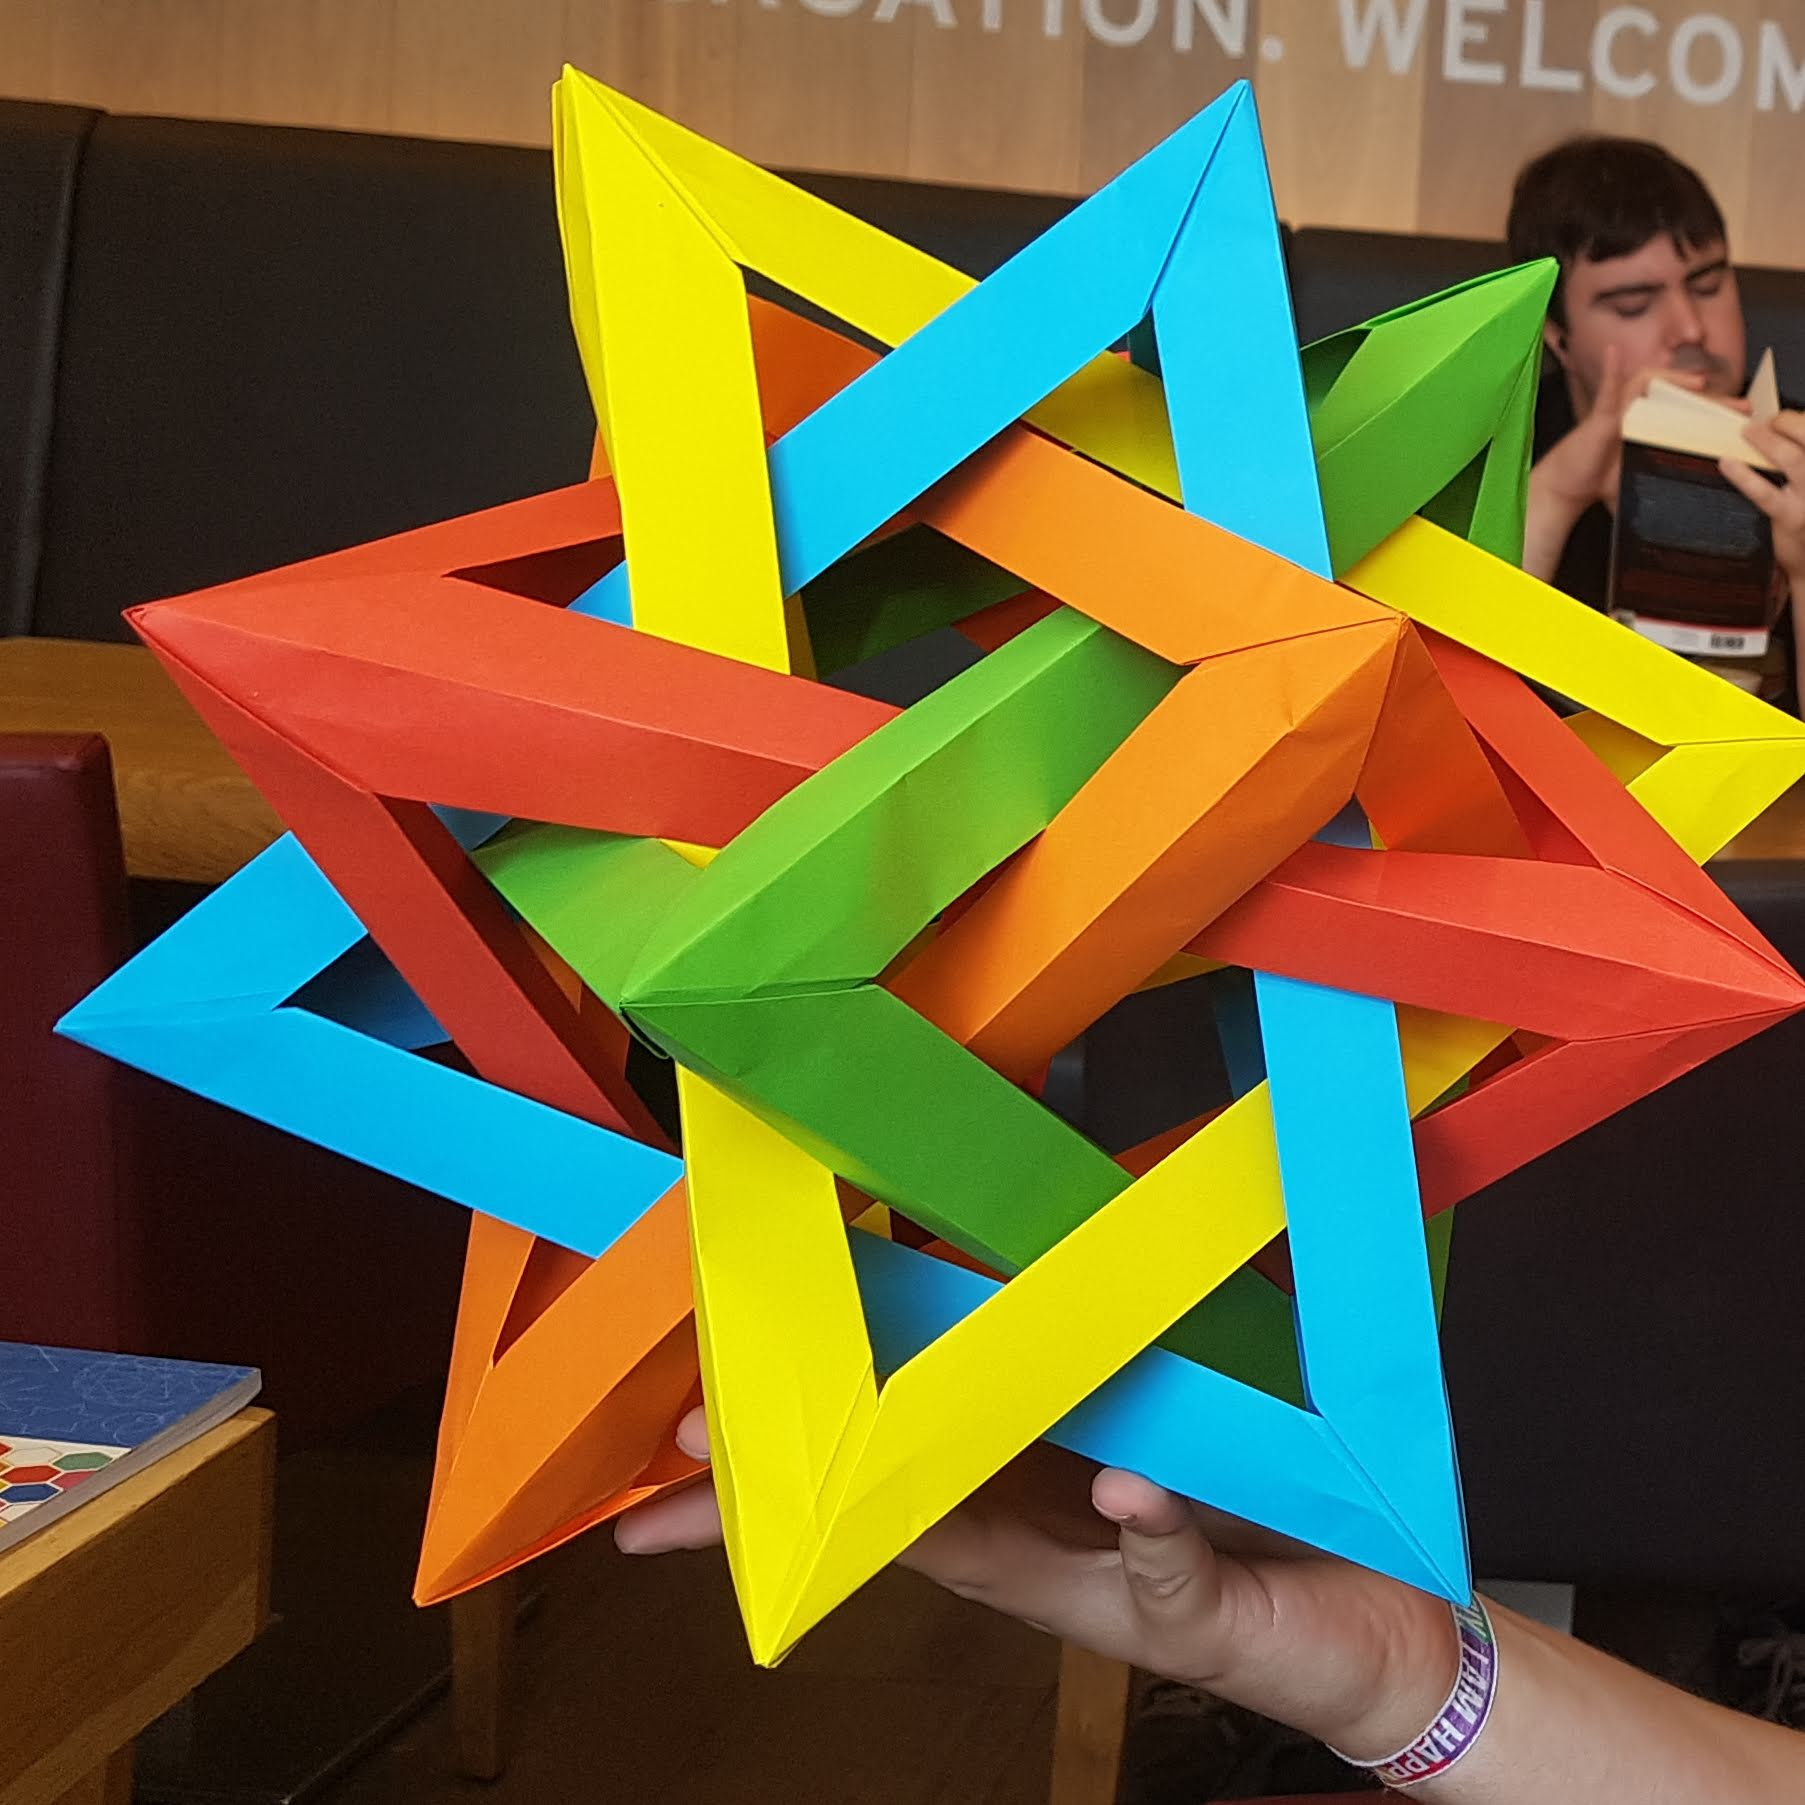 Five intersecting origami tetrahedra